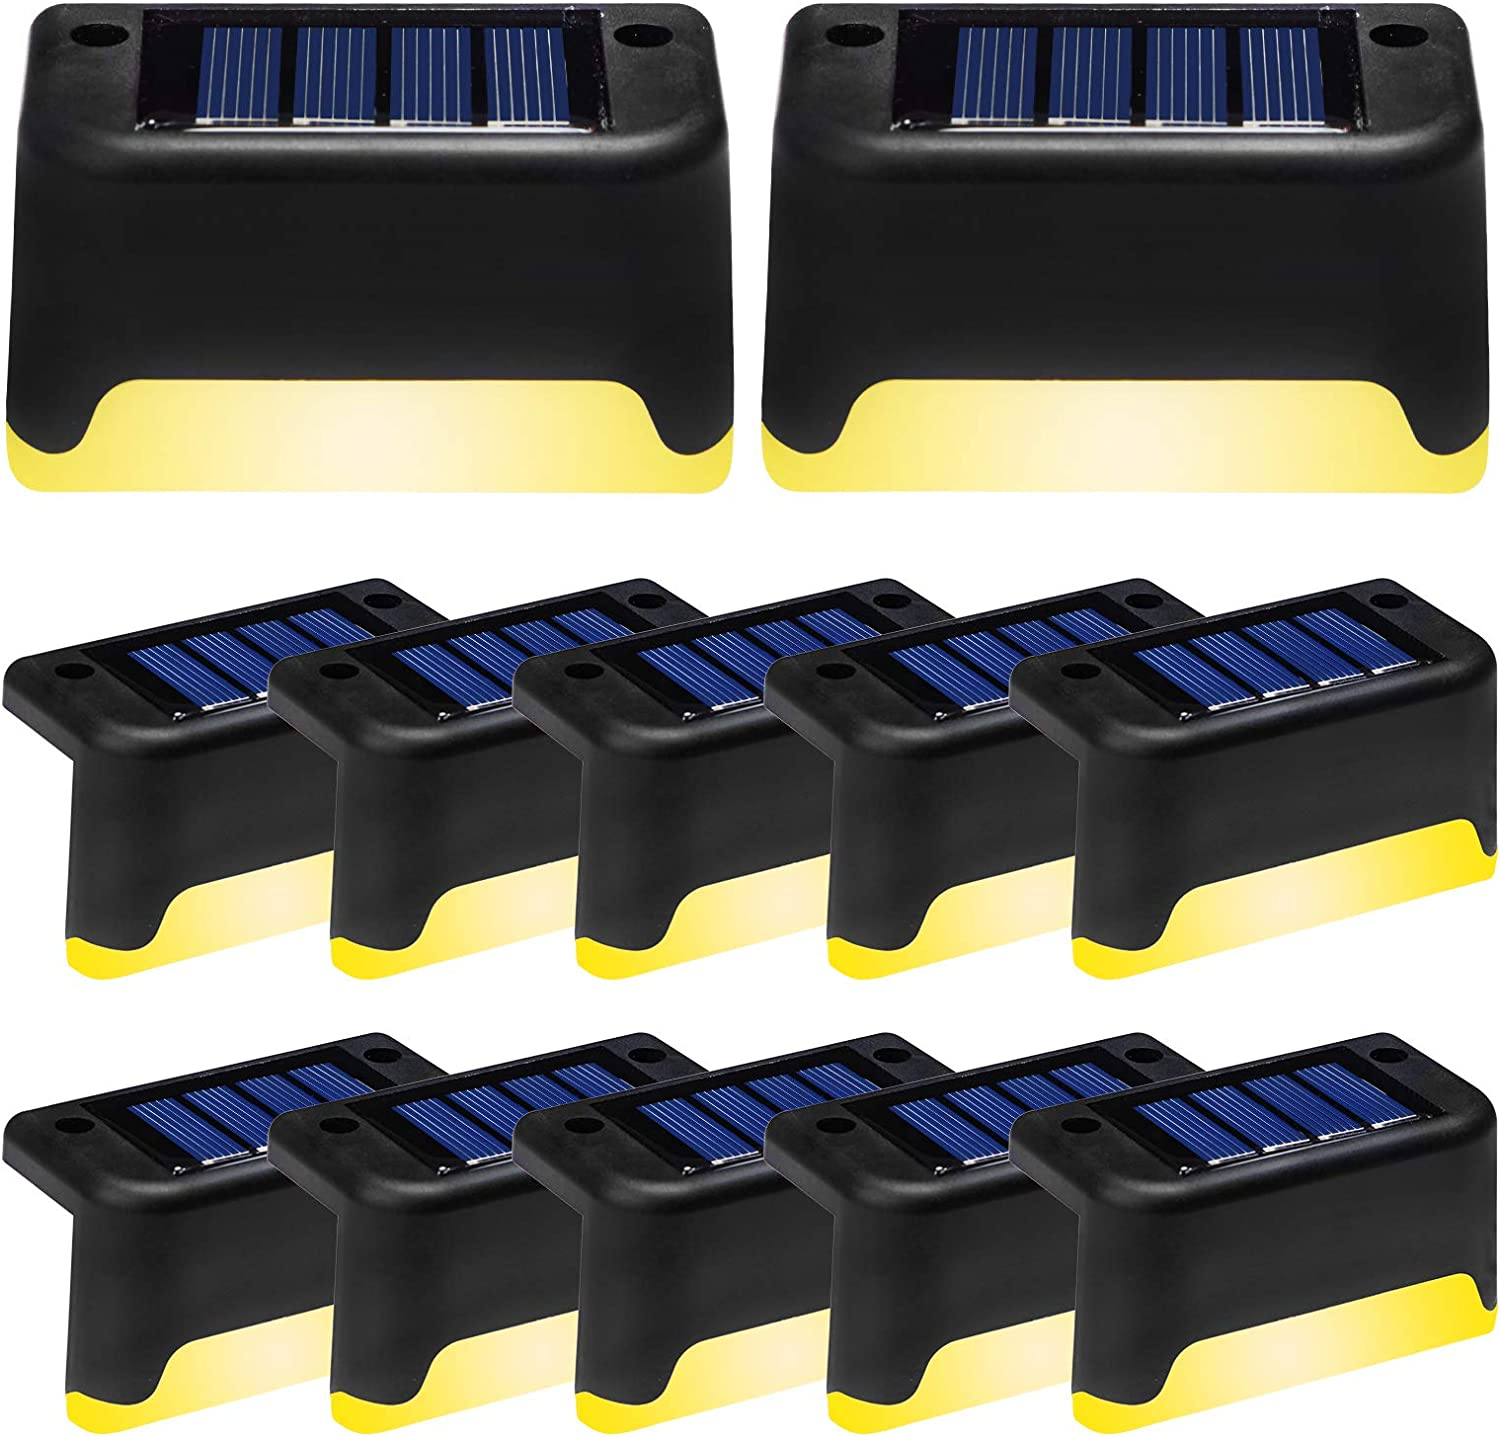 Solar Deck Lights Outdoor,12 Pack LED Step Light Waterproof Landscape Lighting for Stairs,Step,Fence,Yard,Patio,Driveway,Pathway,Yard,Backyard and Garden (Black,Warm White))